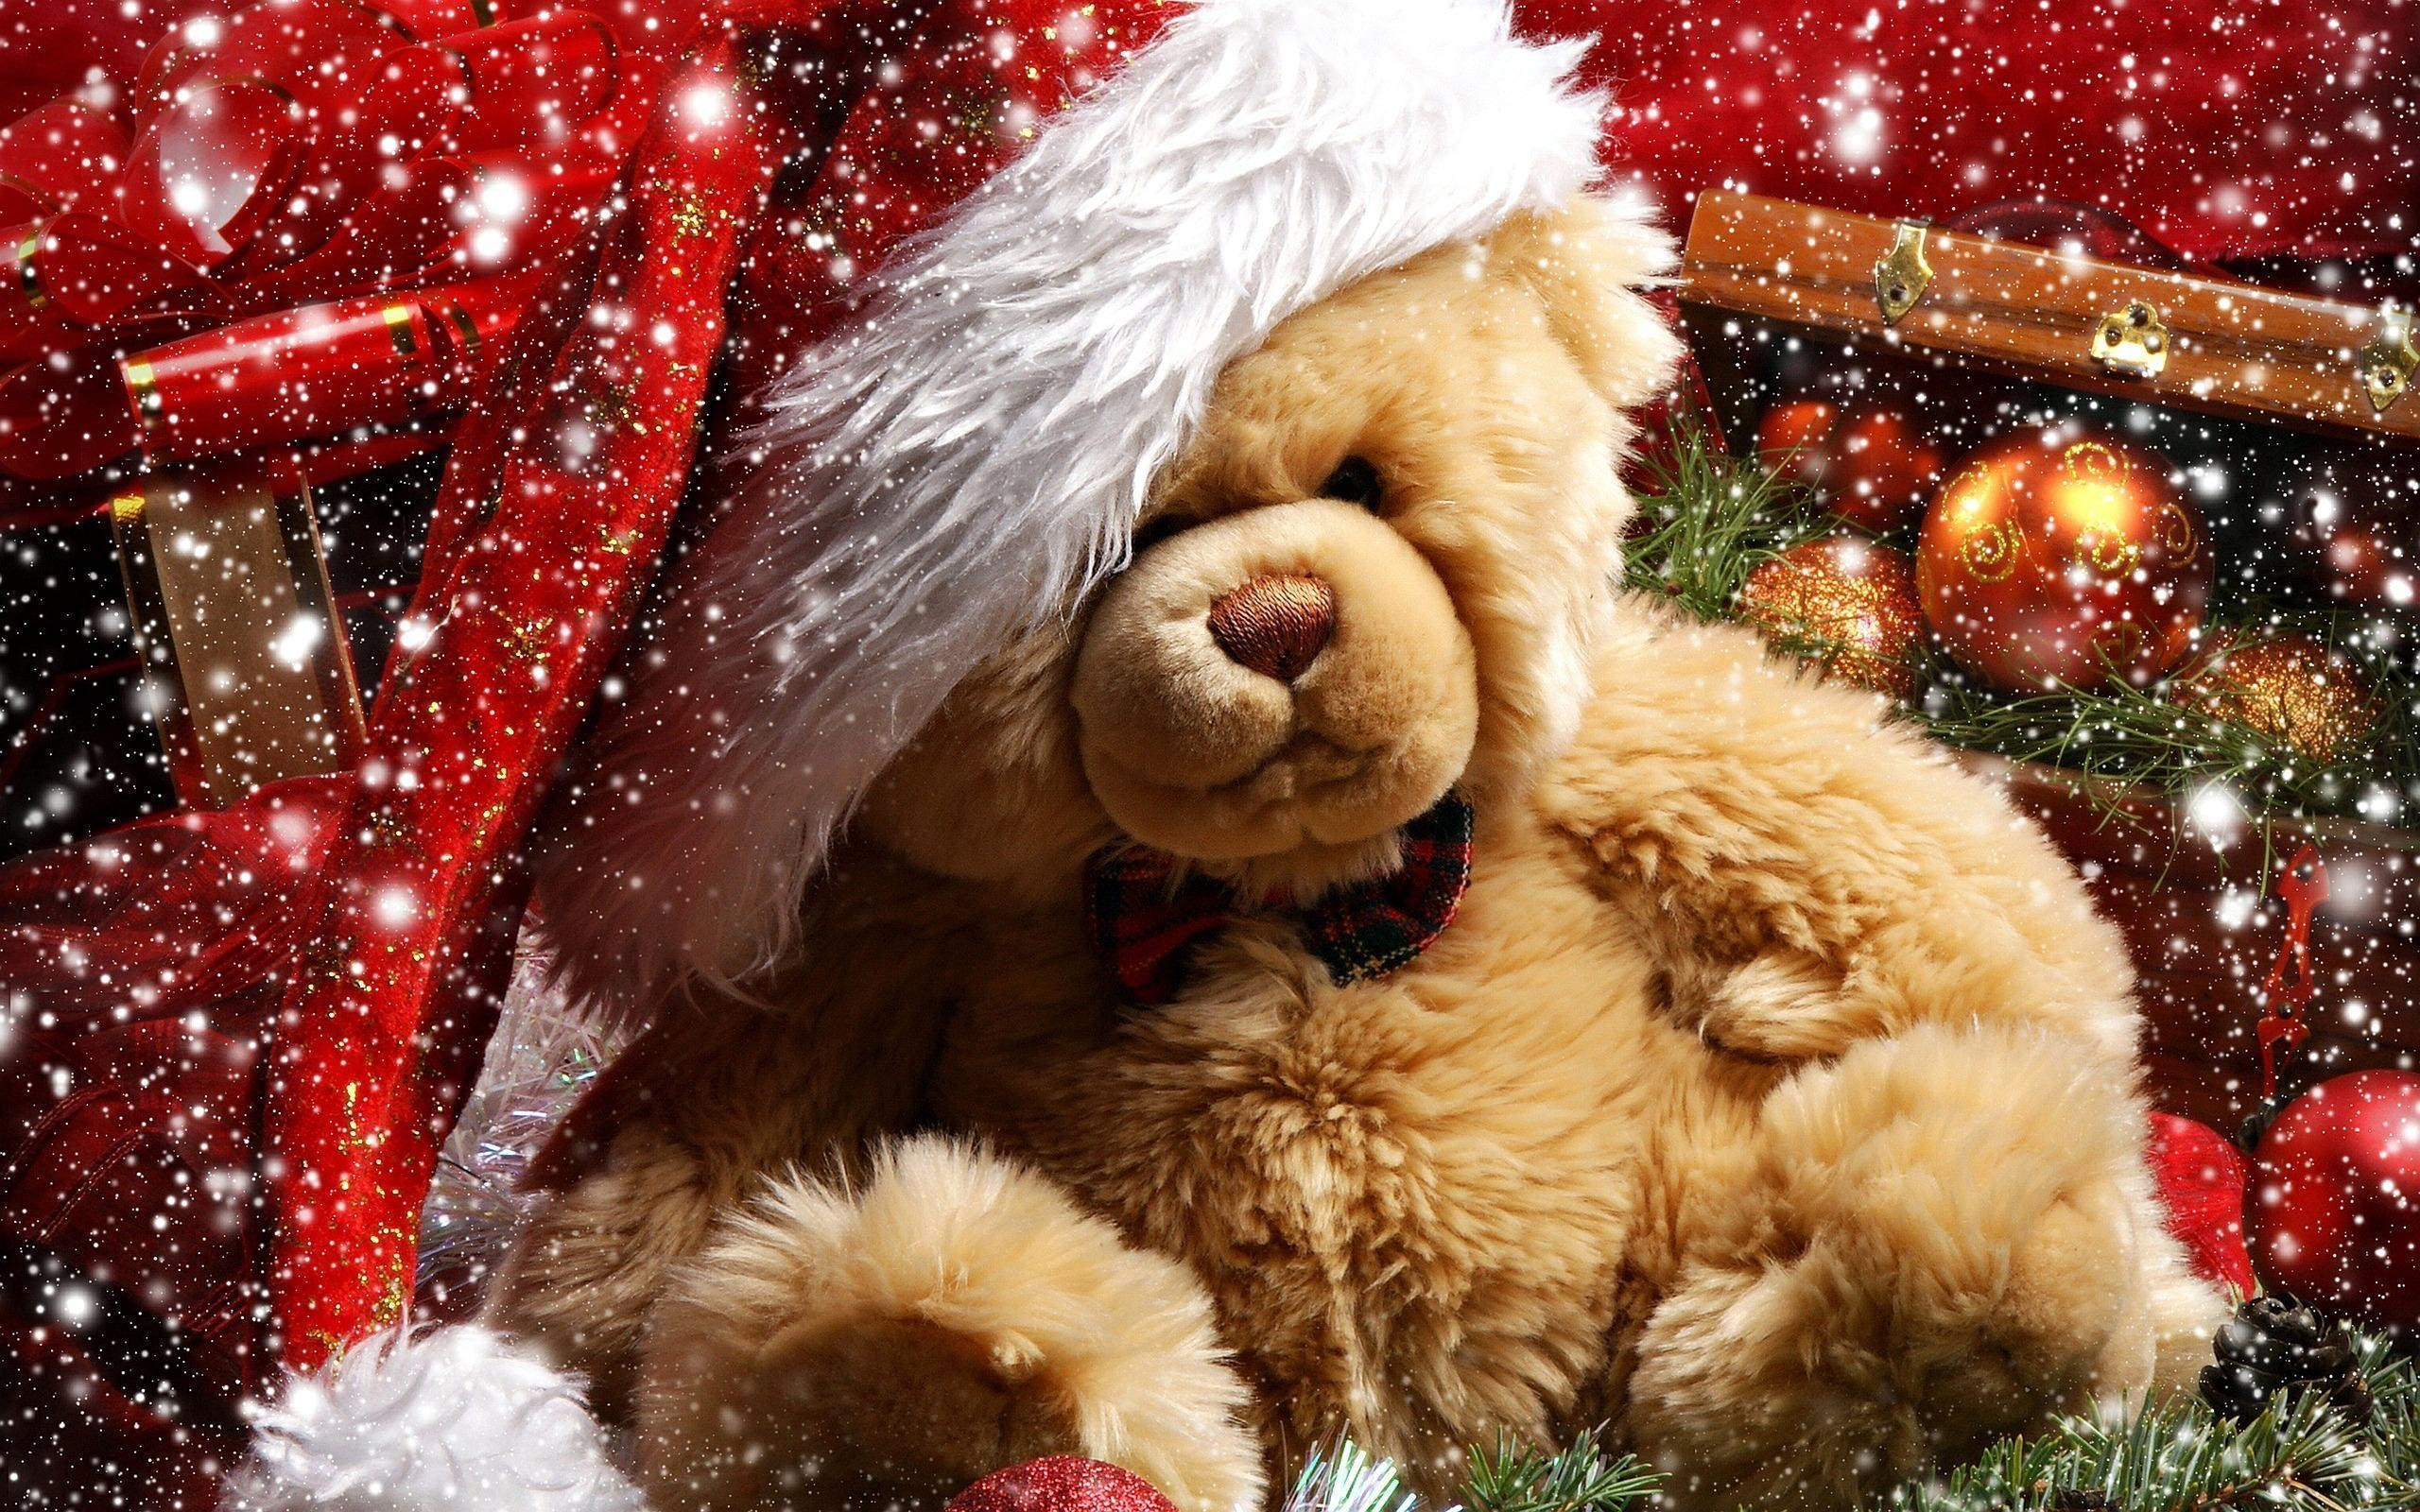 2560x1600 XMas Wallpapers Backgrounds - Download free XMas Xmas teddy bear